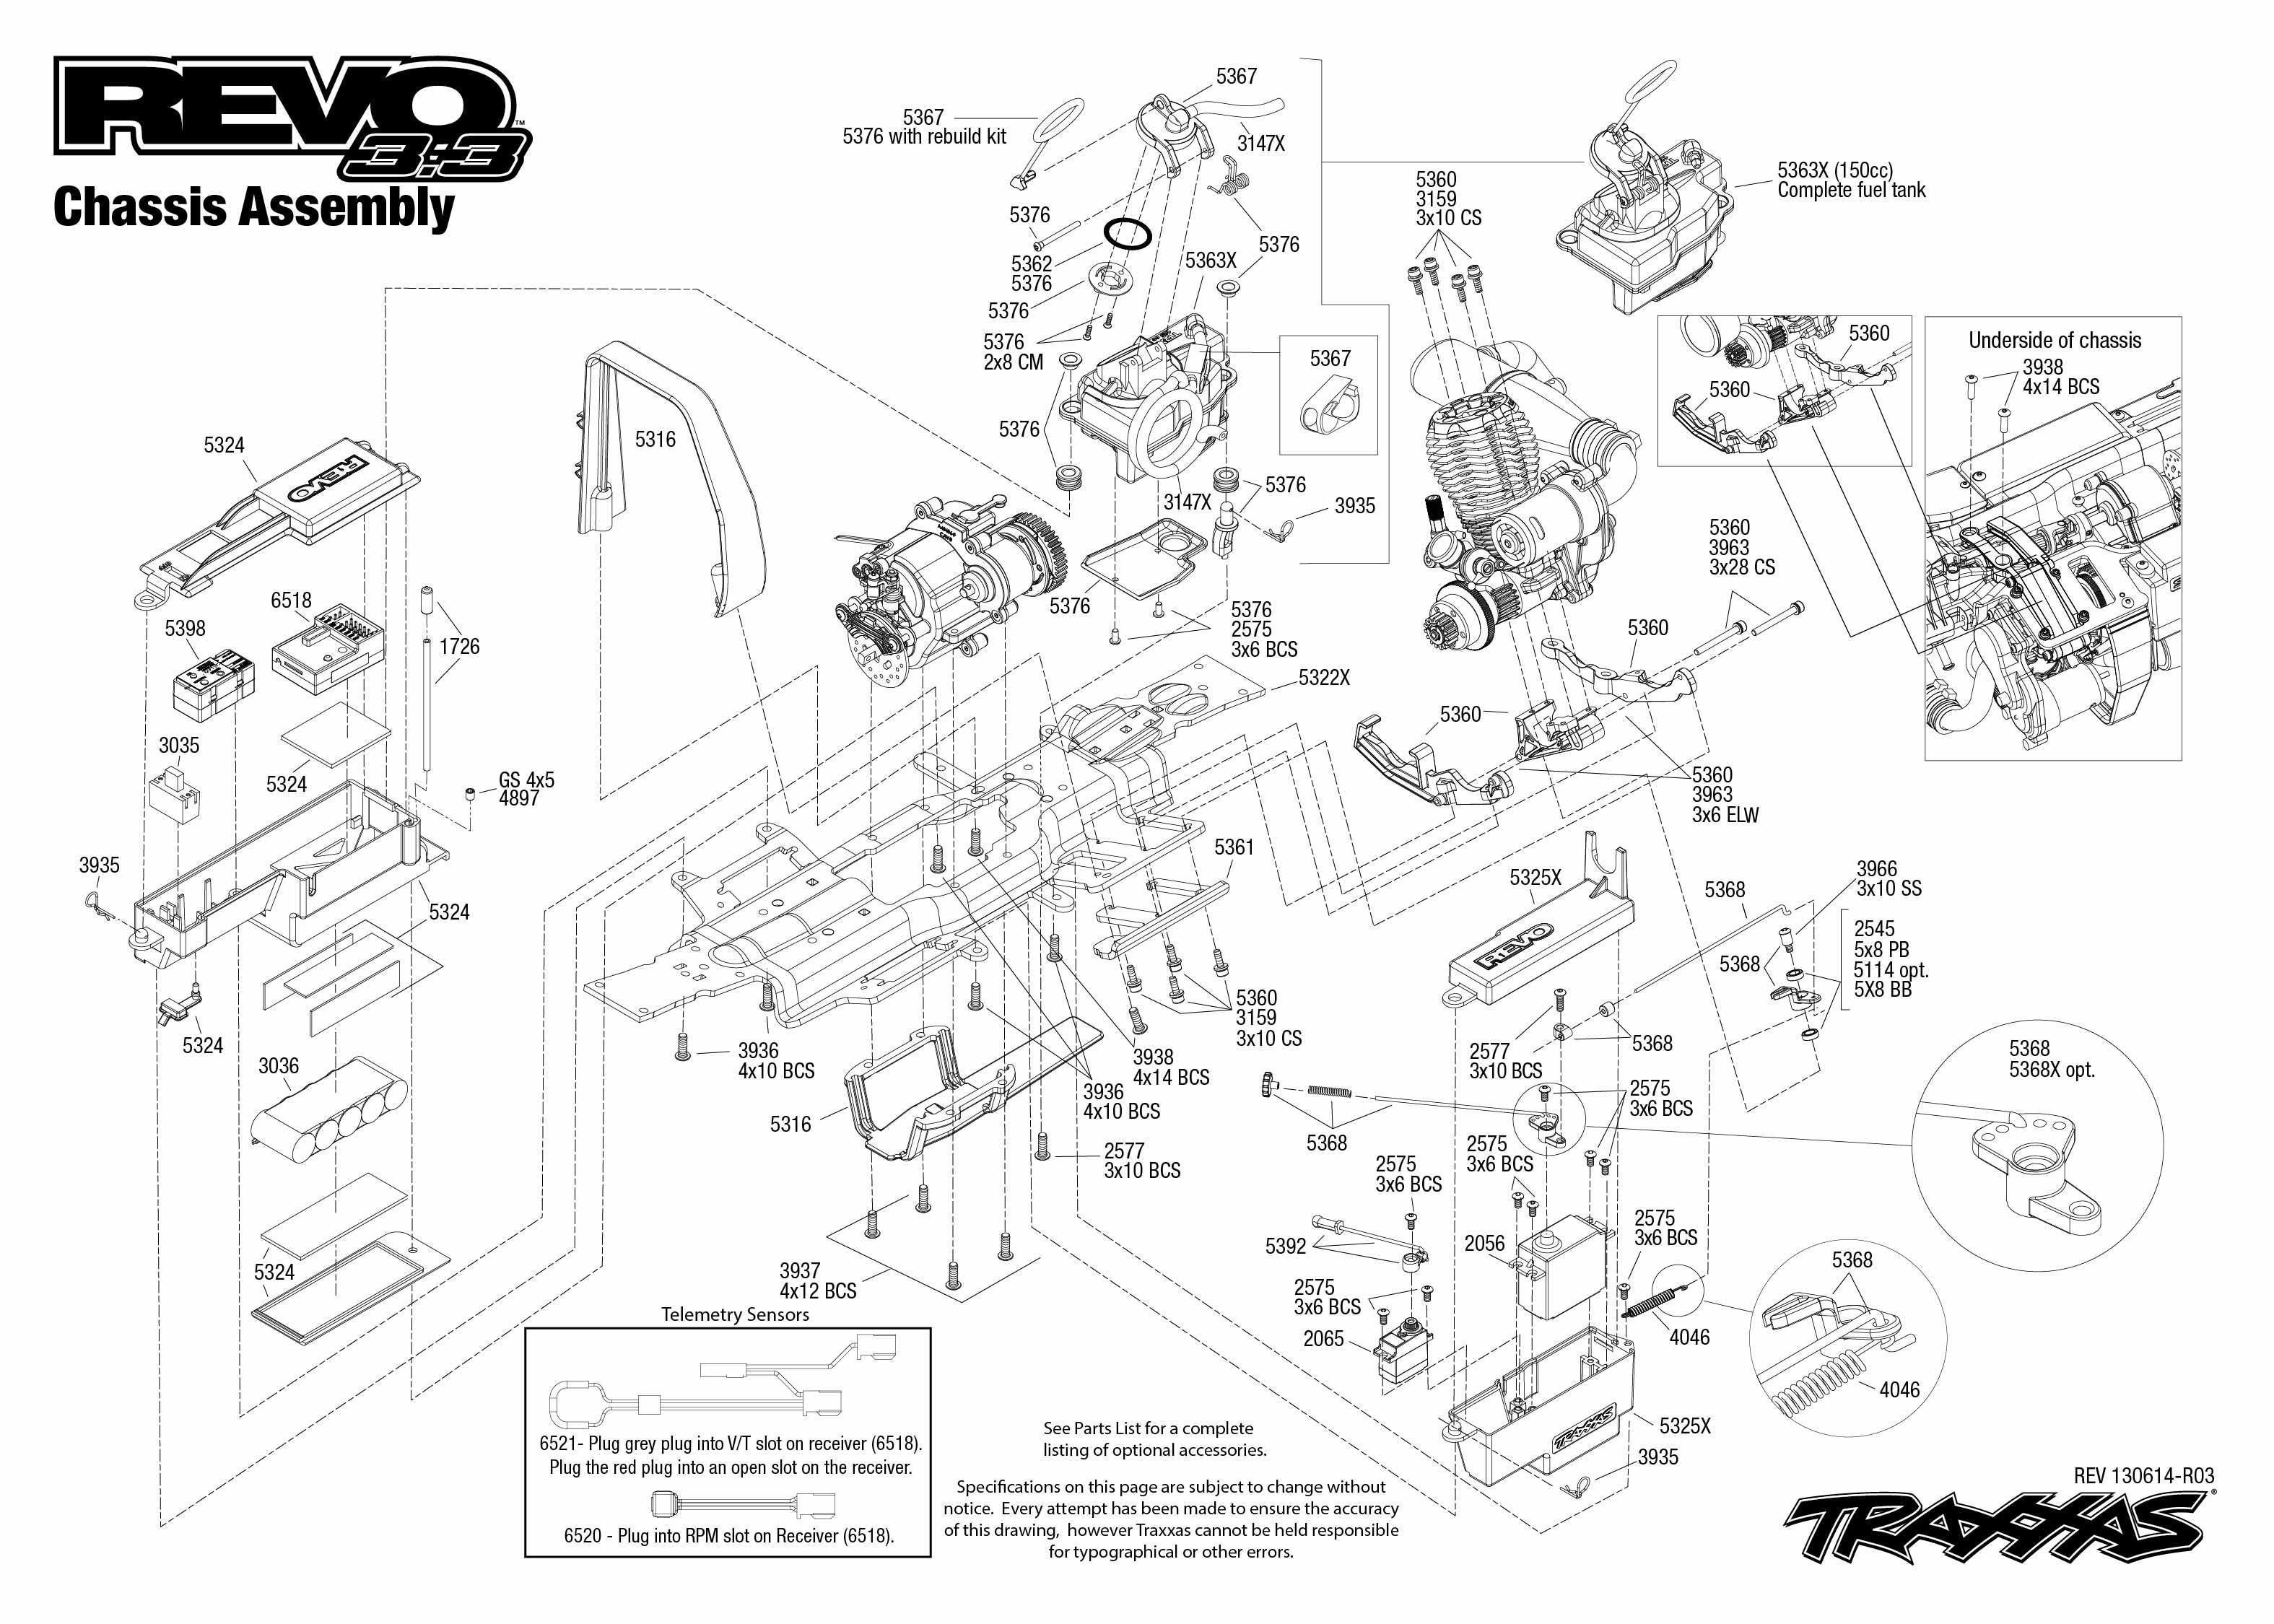 traxxas revo 3 parts diagram fetal pig reproductive system new rtr 4wd nitro monster truck 5309 w